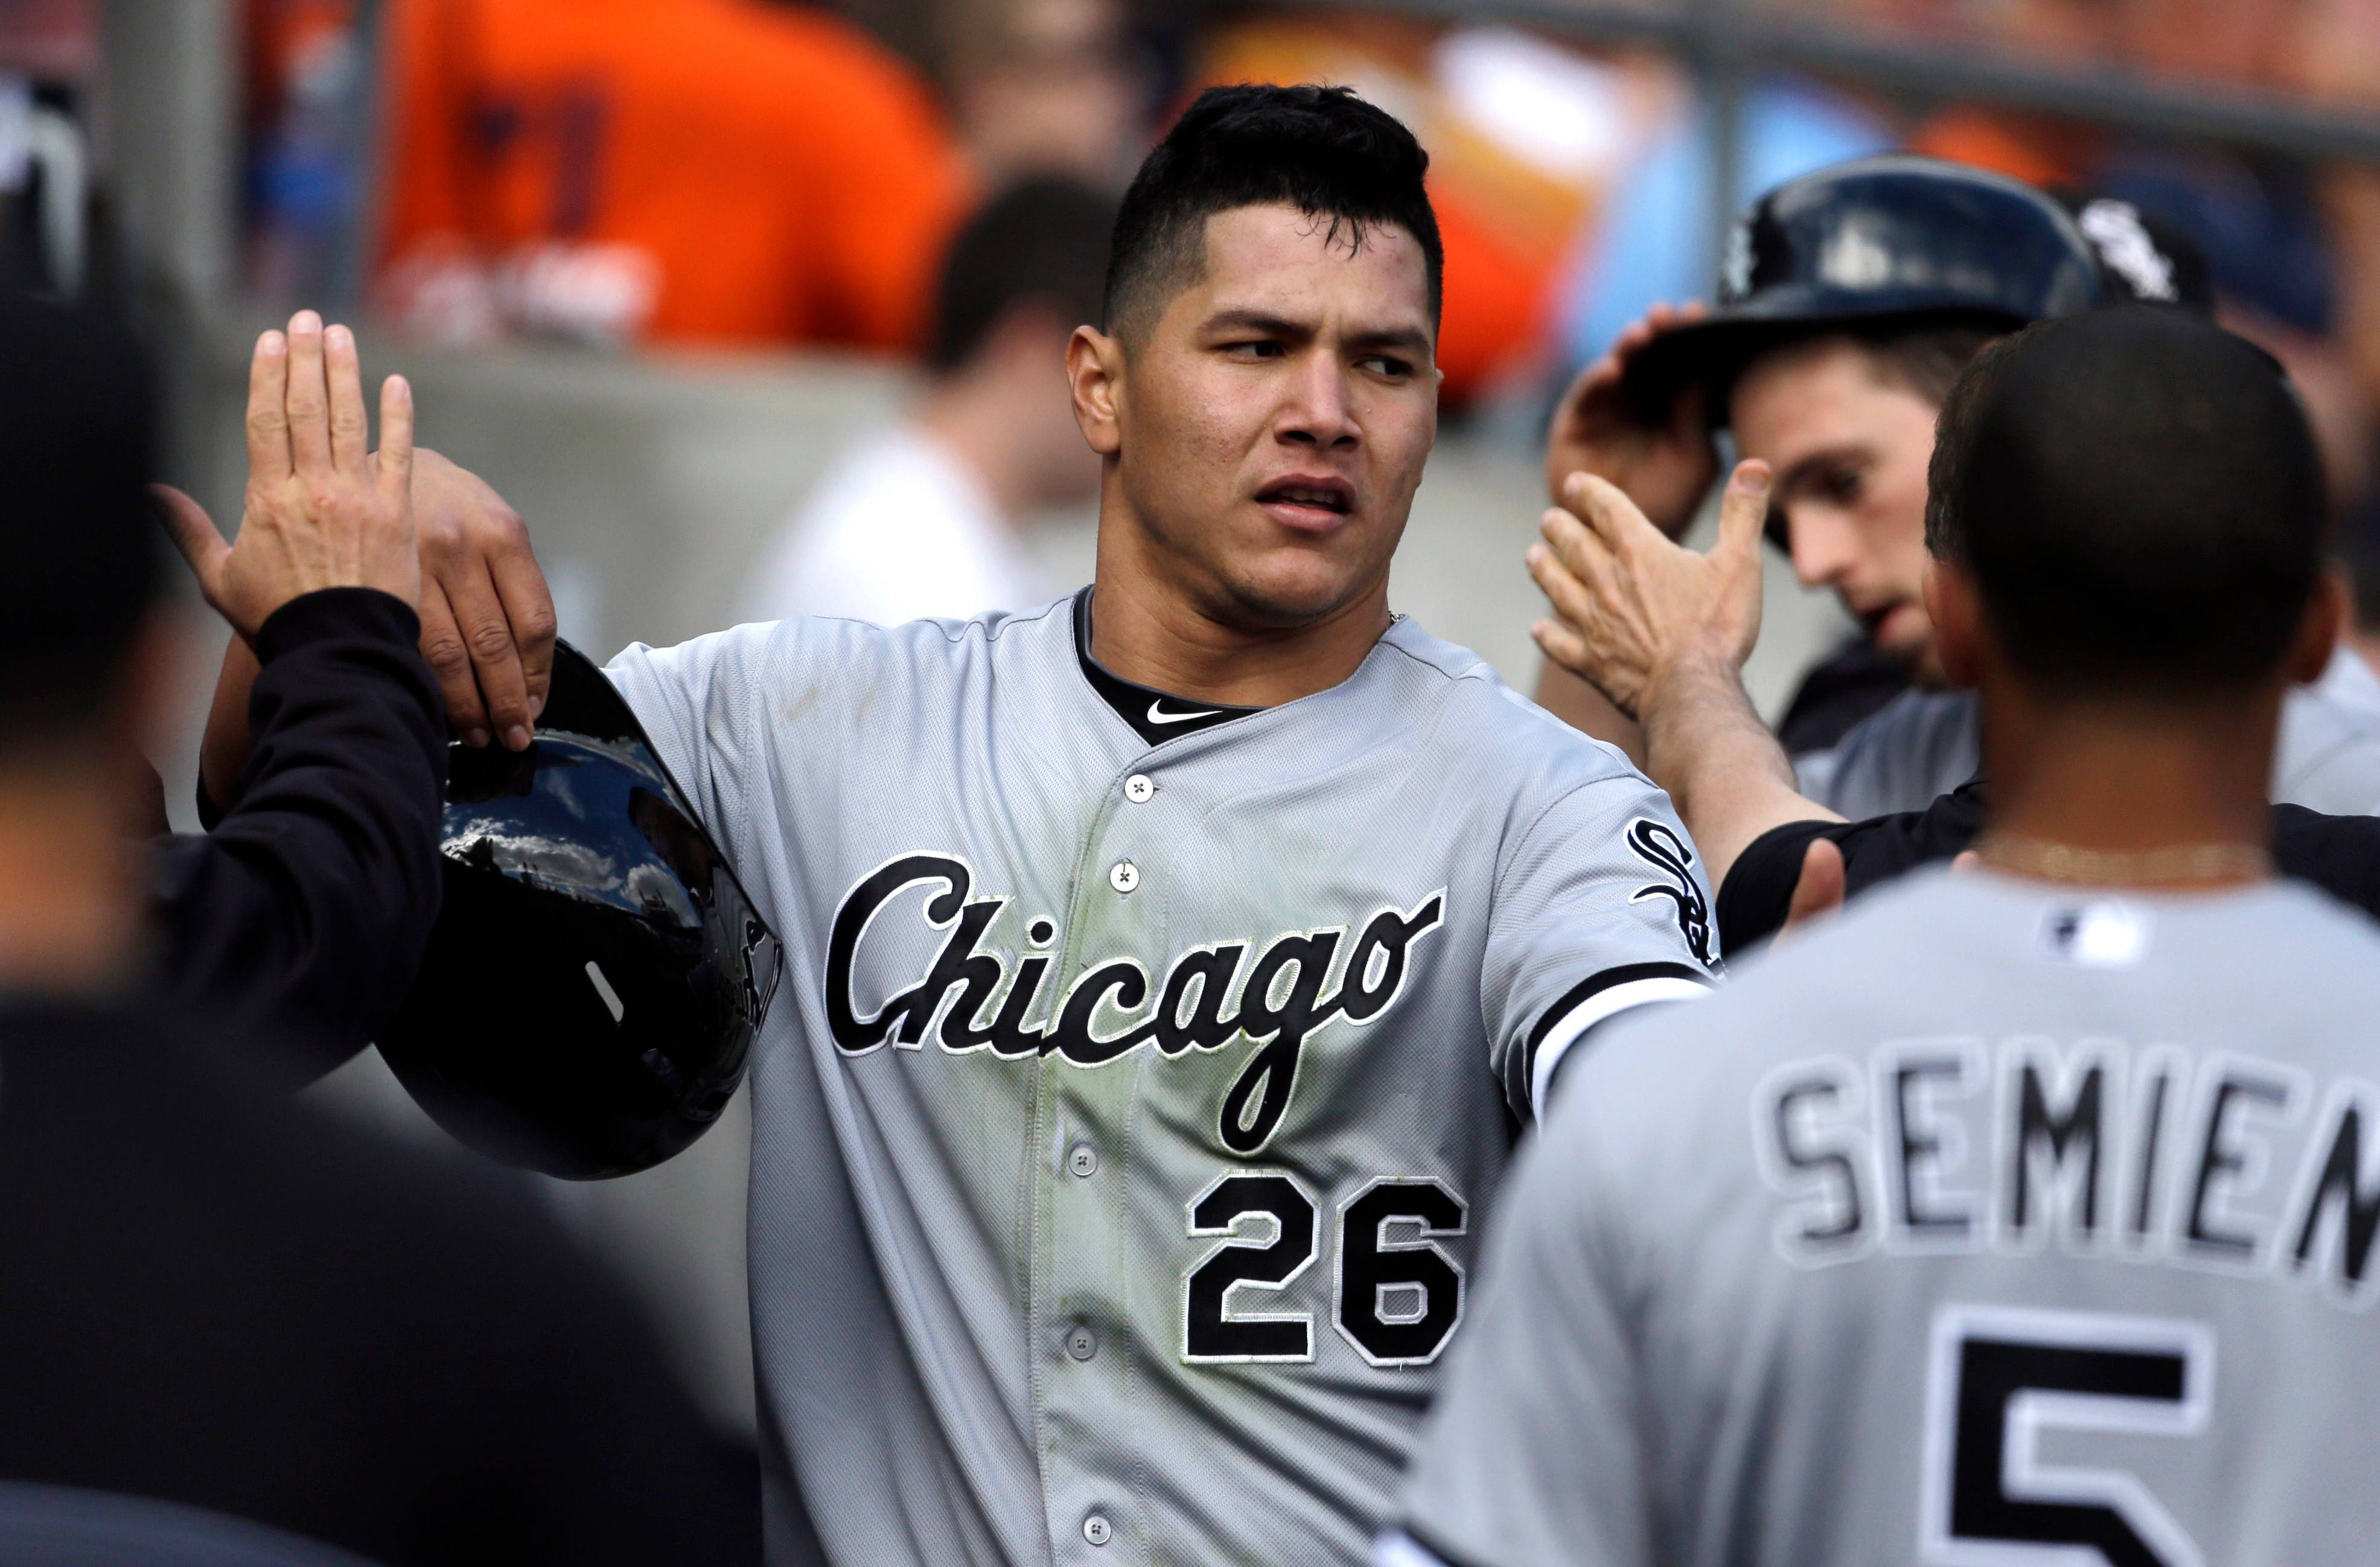 The White Sox began rebuilding last July with the acquisition of right fielder Avisail Garcia.